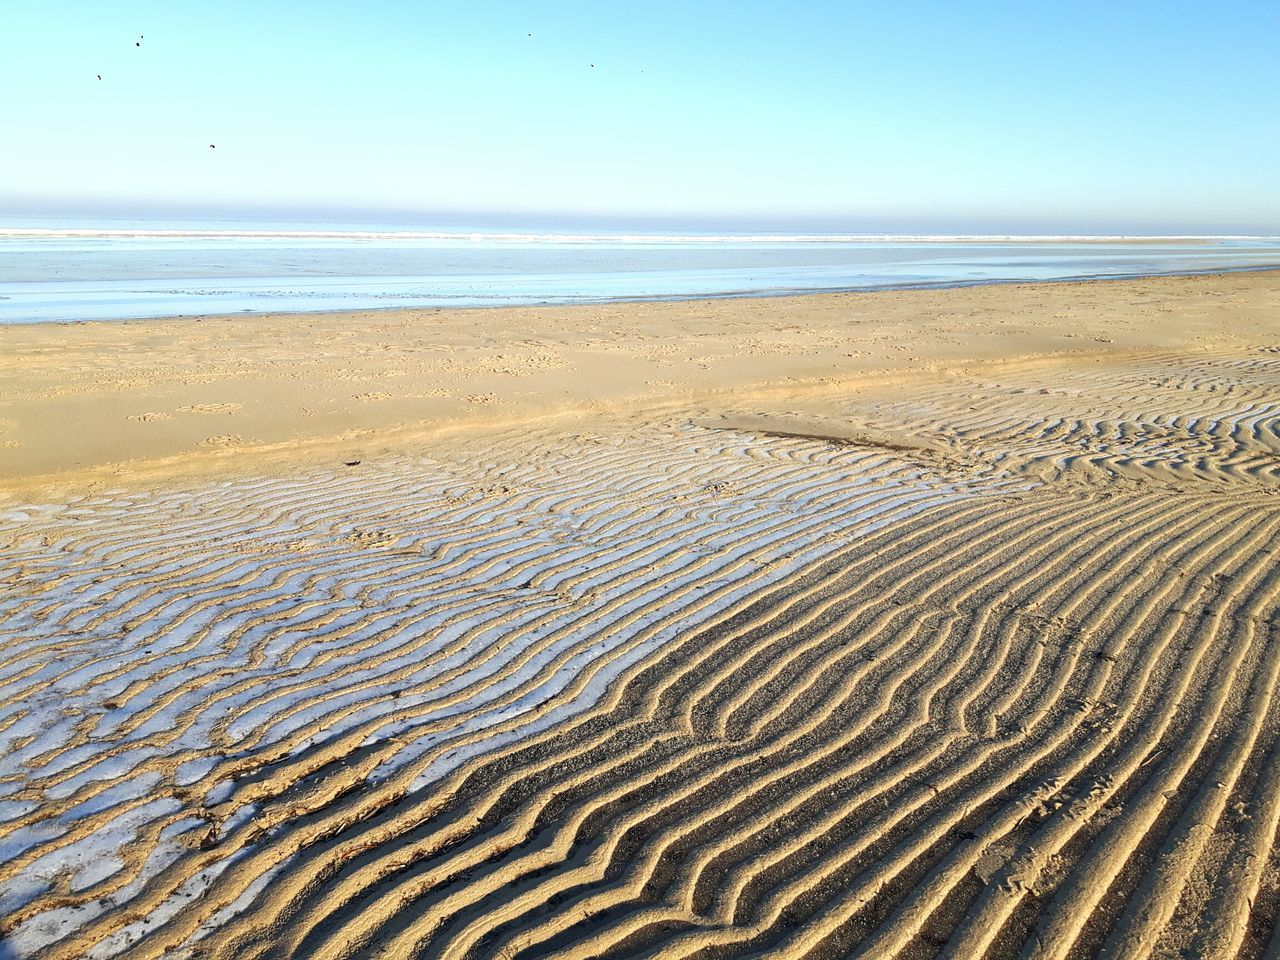 💎🌬❄🌊 February10th Sea Freshness Garciems Beach Clear Sky Beauty In Nature Nature Horizon Over Water Sand Frozen Frost Frosty Mornings Sky Landscape Water No People Snow Traveling Baltic Sea Cold Temperature Betterlandscapes Clear Sky Frozen Water February